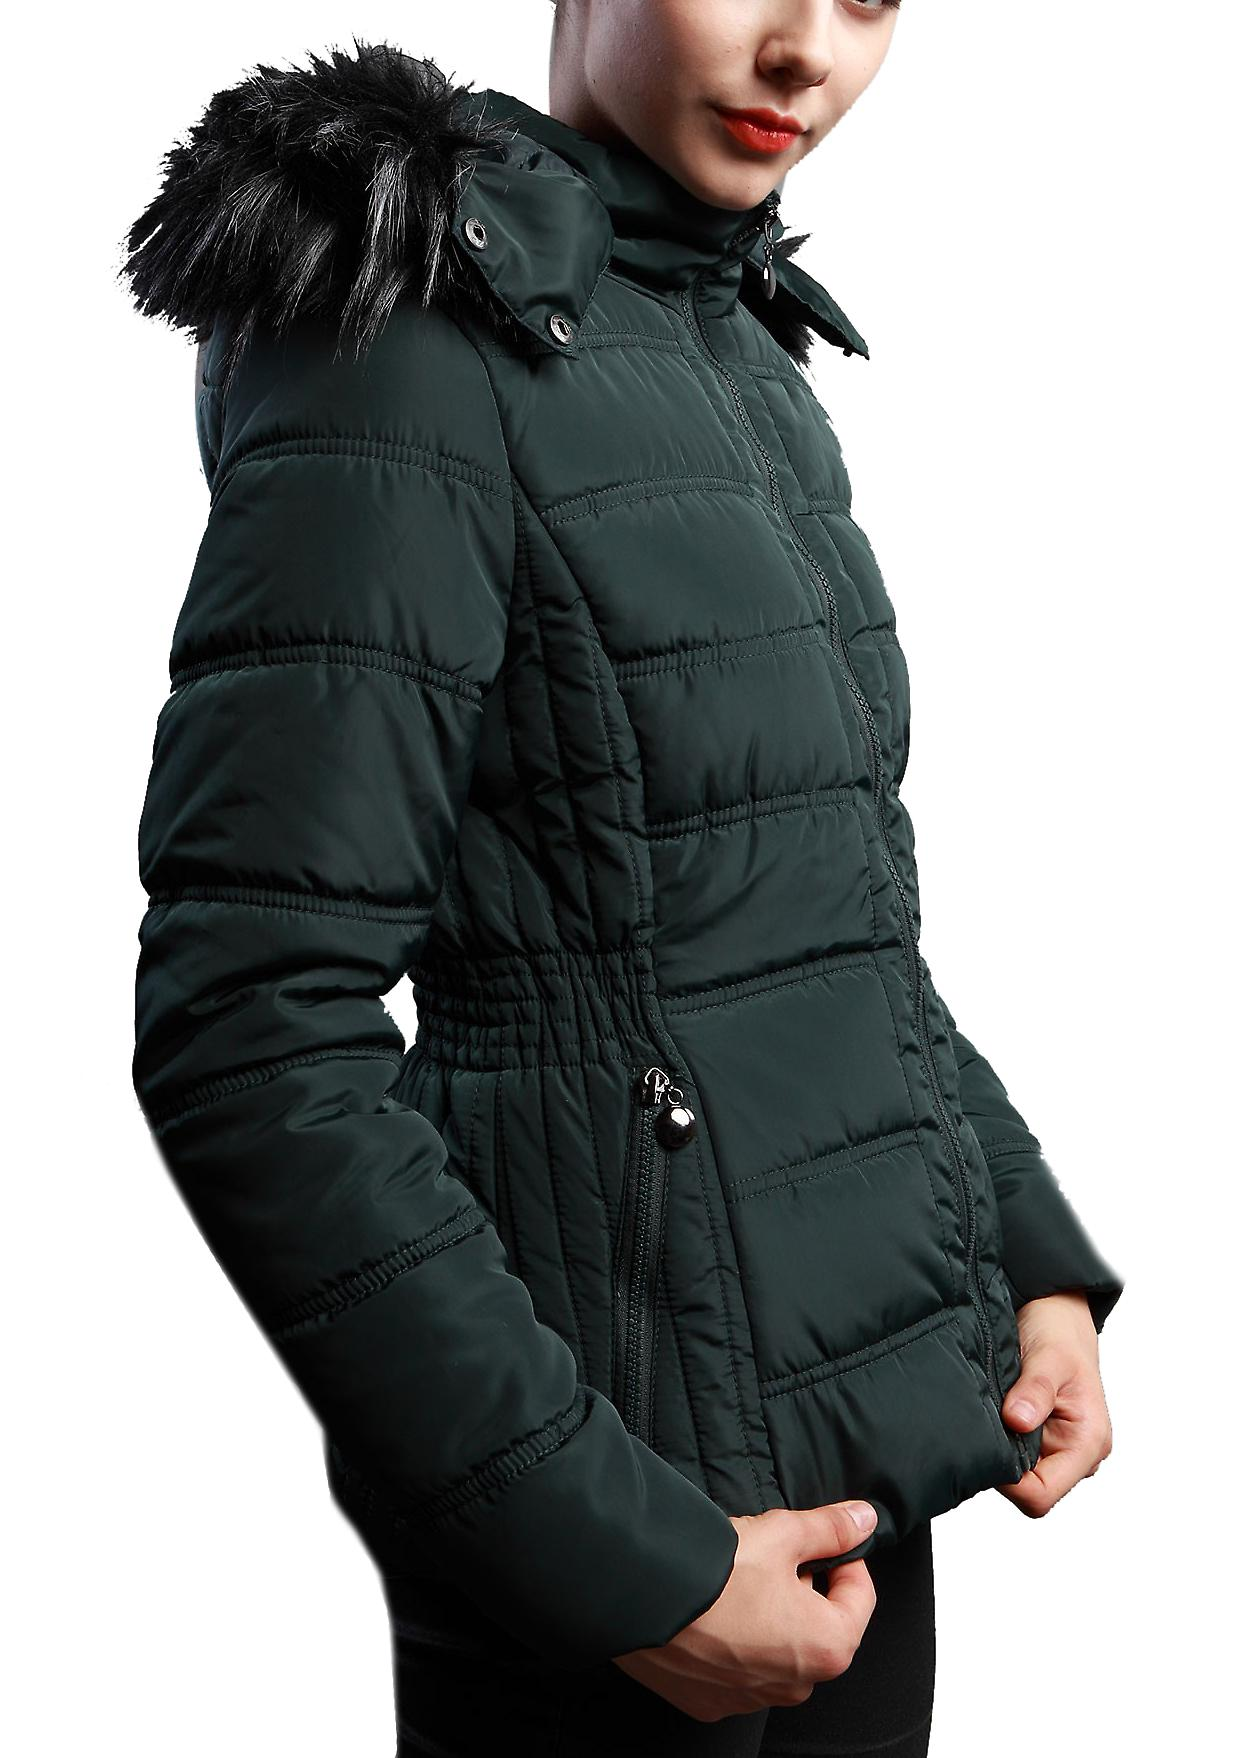 Waooh - Removable hood Jacket Stili